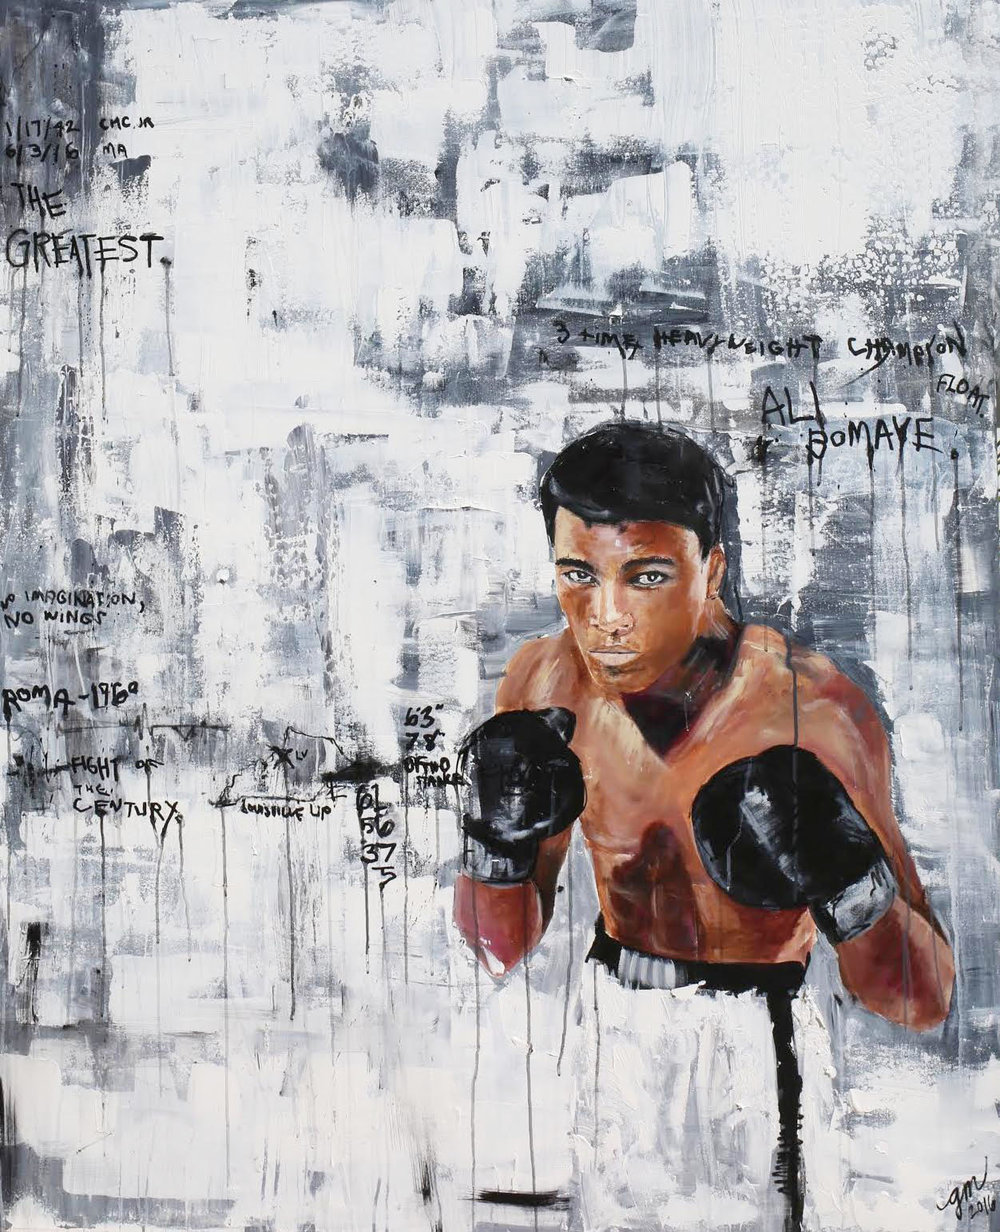 ALI BOMAYE, 2016 (GREATEST OF ALL TIME series) 48 X 60 INCHES MIXED MEDIA – OIL/ACRYLIC ON STRETCHED LINEN CANVAS *pricing available upon request